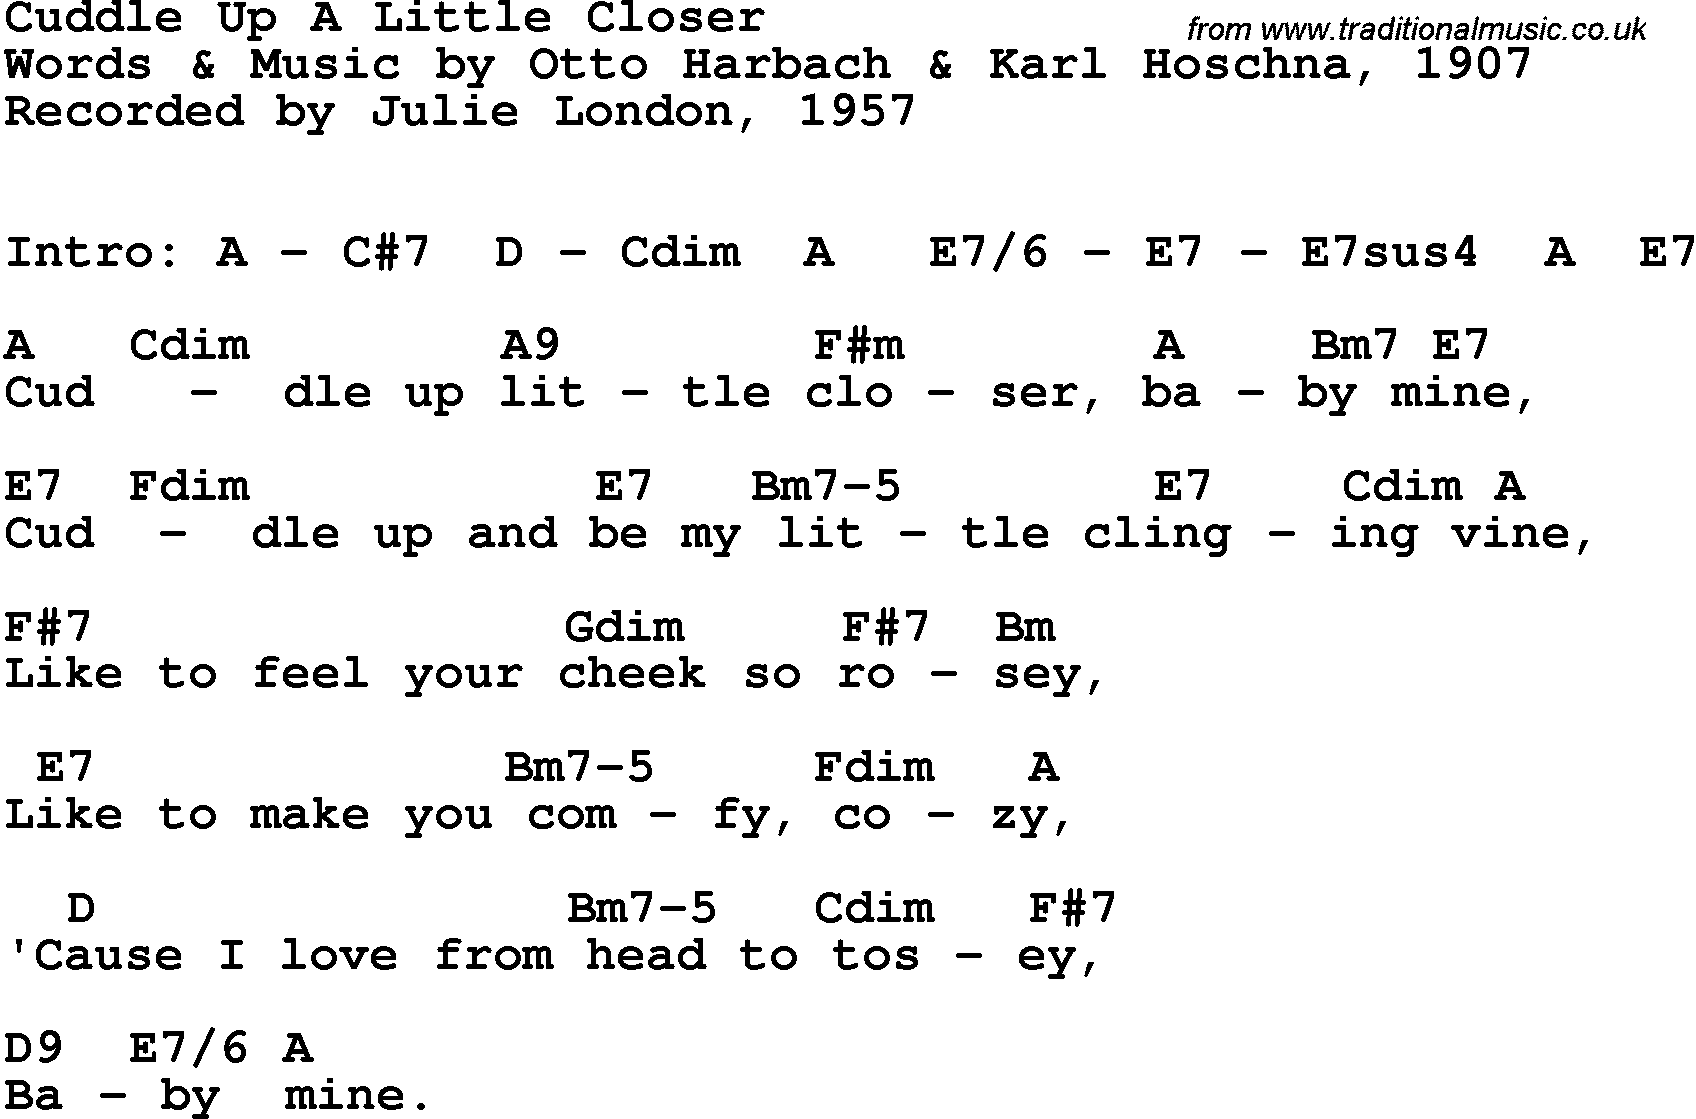 Song Lyrics With Guitar Chords For Cuddle Up A Little Closer Julie